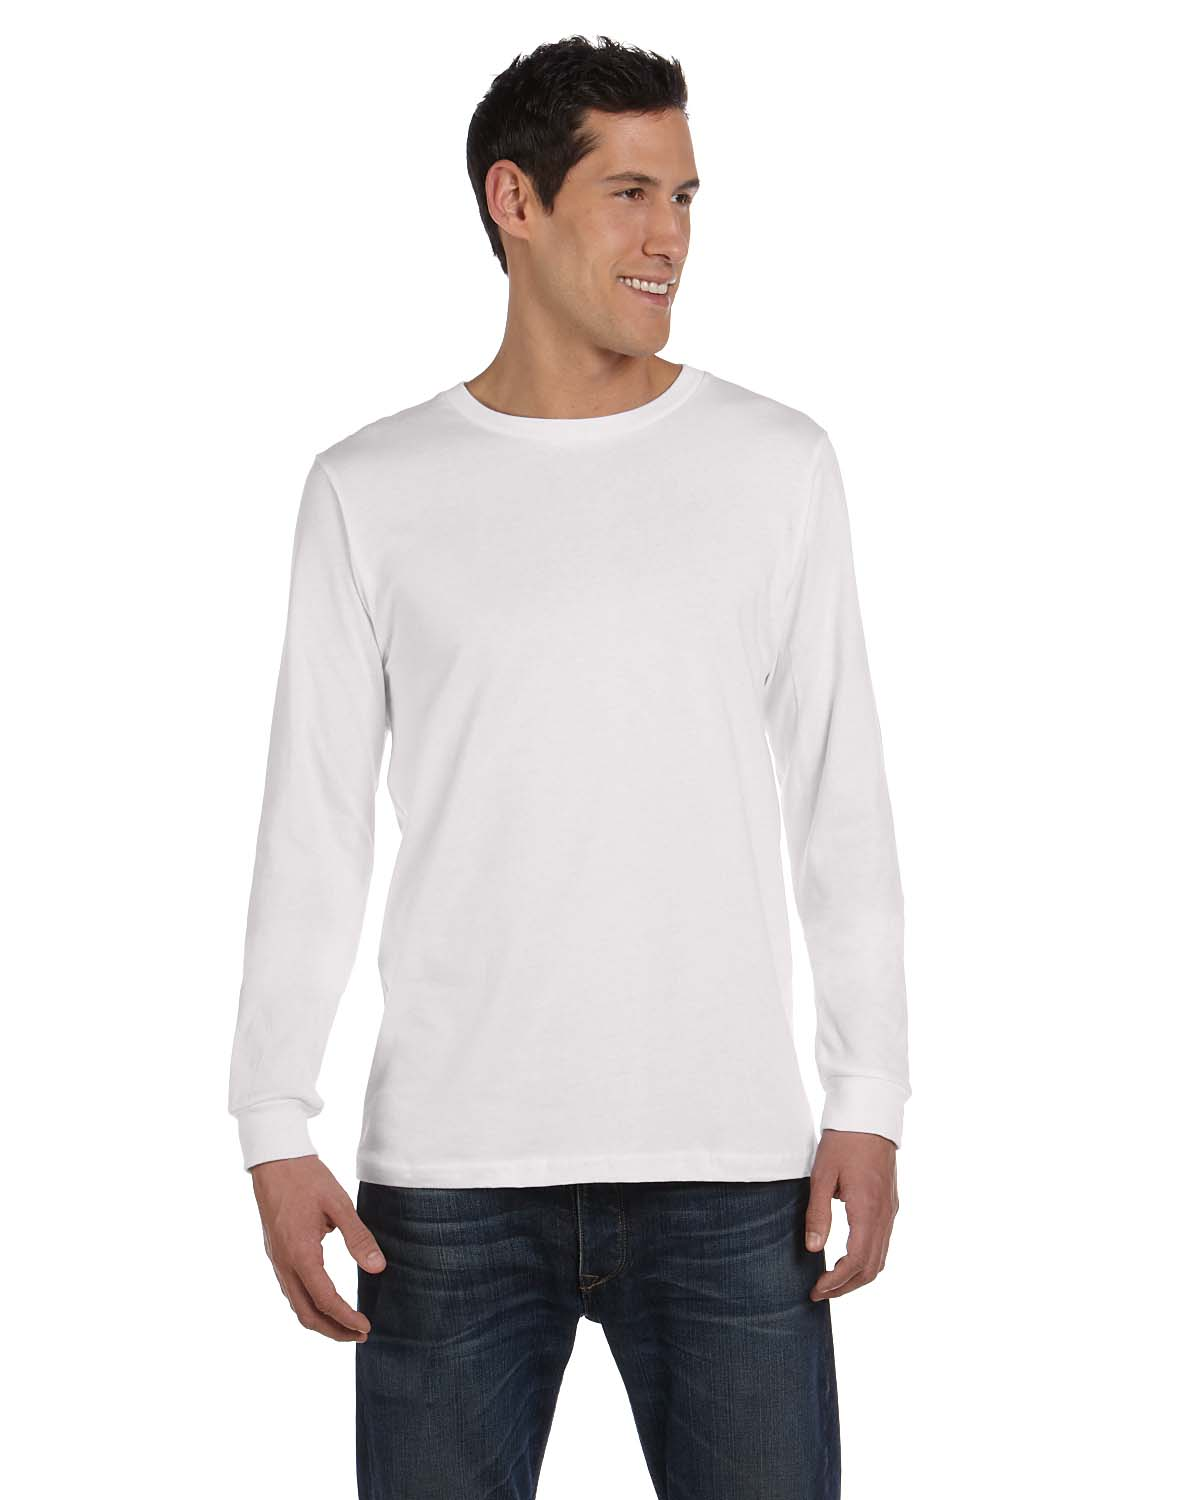 2edc6f71071 Bella+Canvas 3501 Men s Jersey Long-Sleeve Tee - Shirtmax